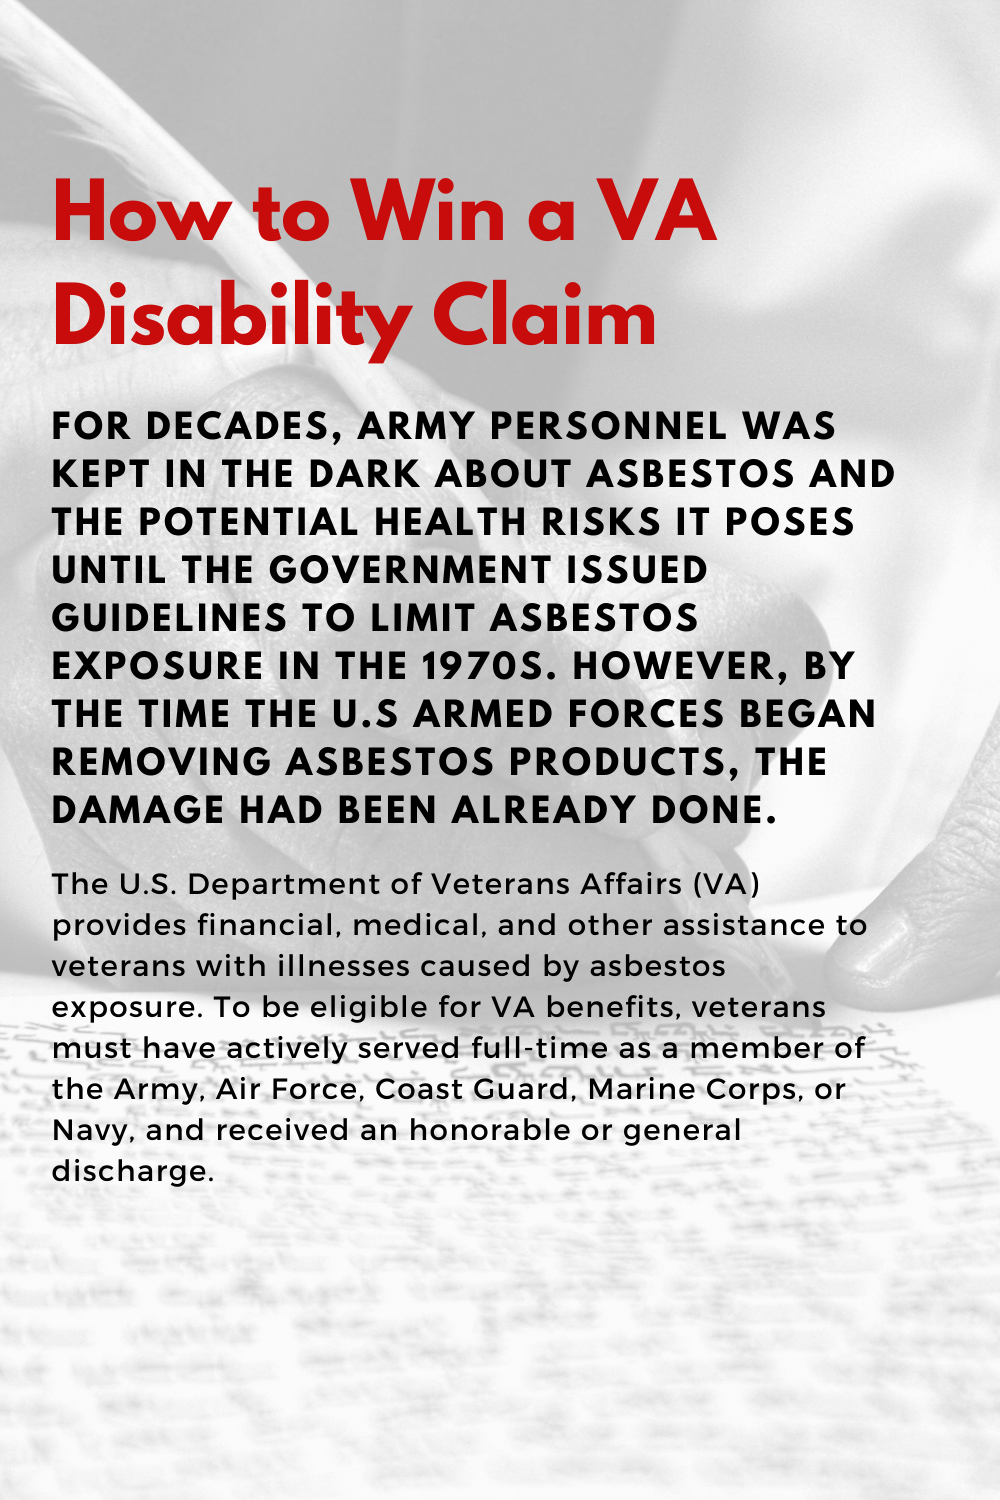 32975d599982aa164409341fb41c9d47 - How Long Does It Take To Get Veterans Disability Benefits